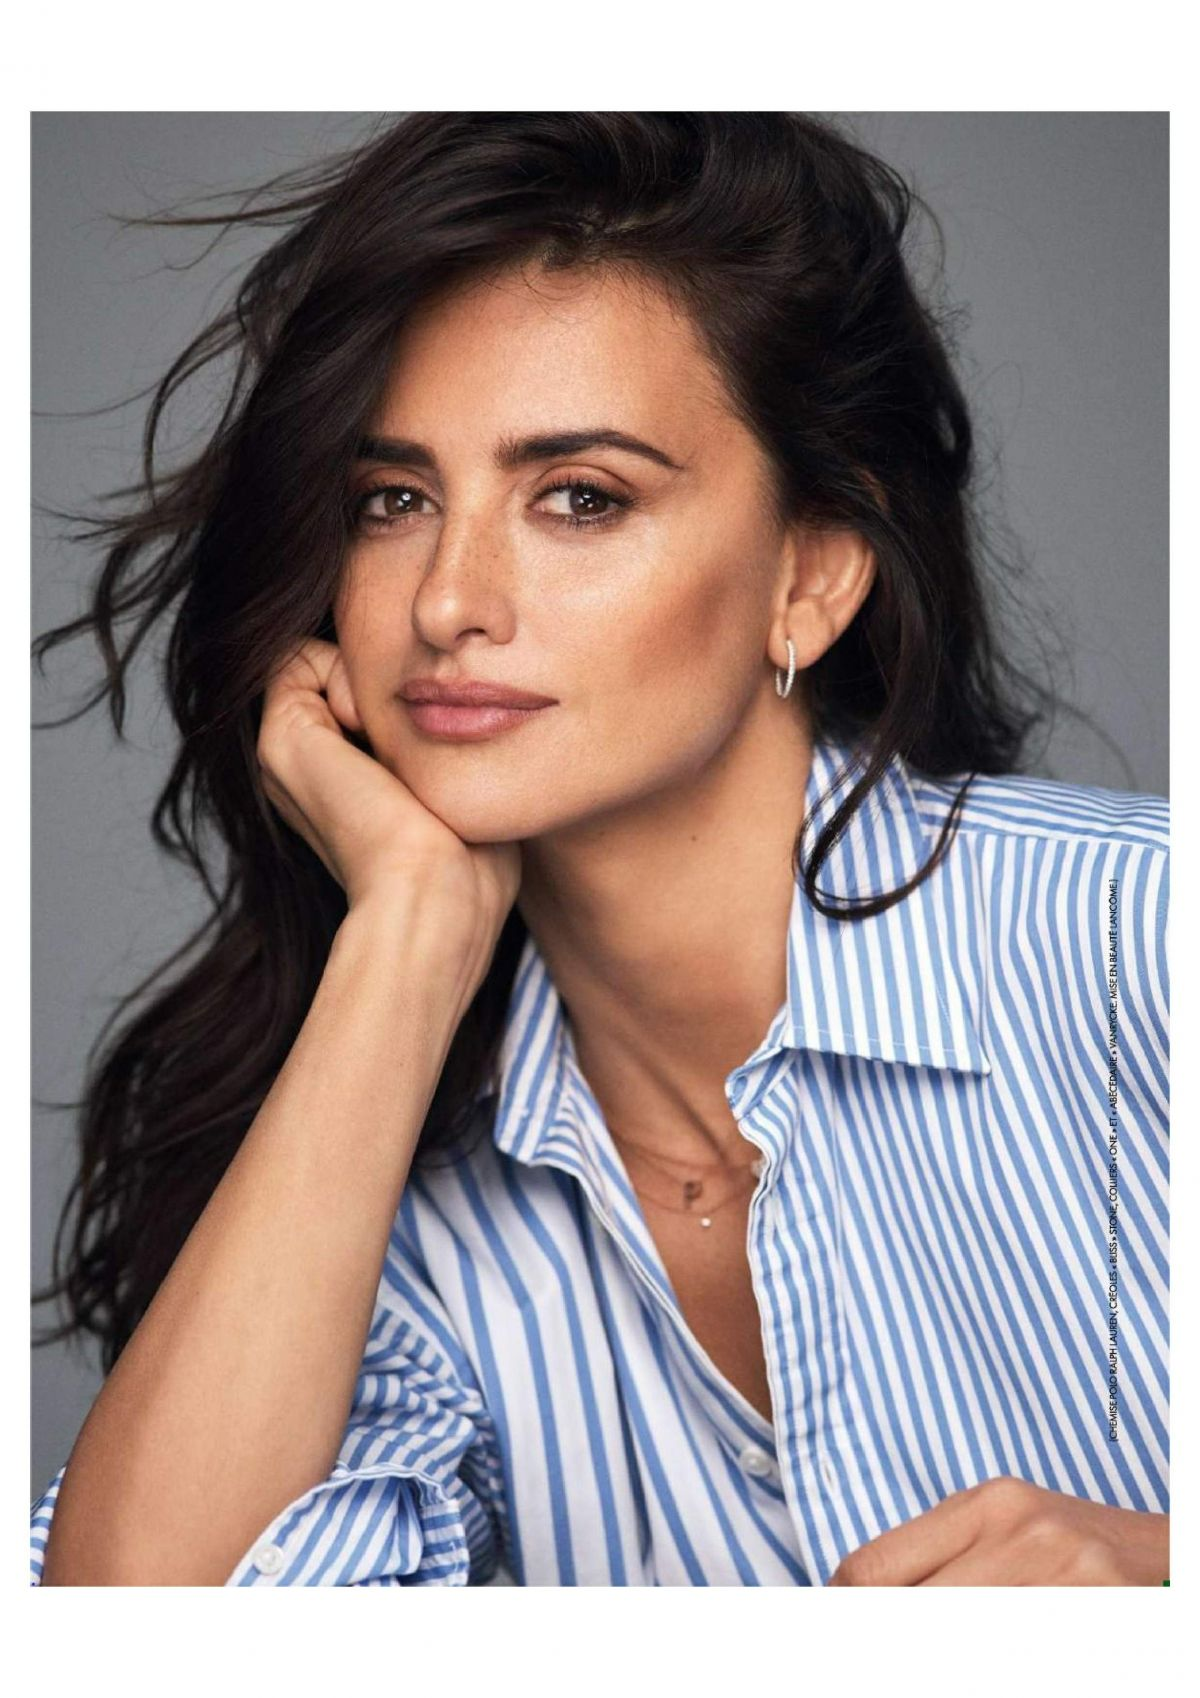 Penelope Cruz - Elle France January 2018 - Celebzz - Celebzz Penelope Cruz